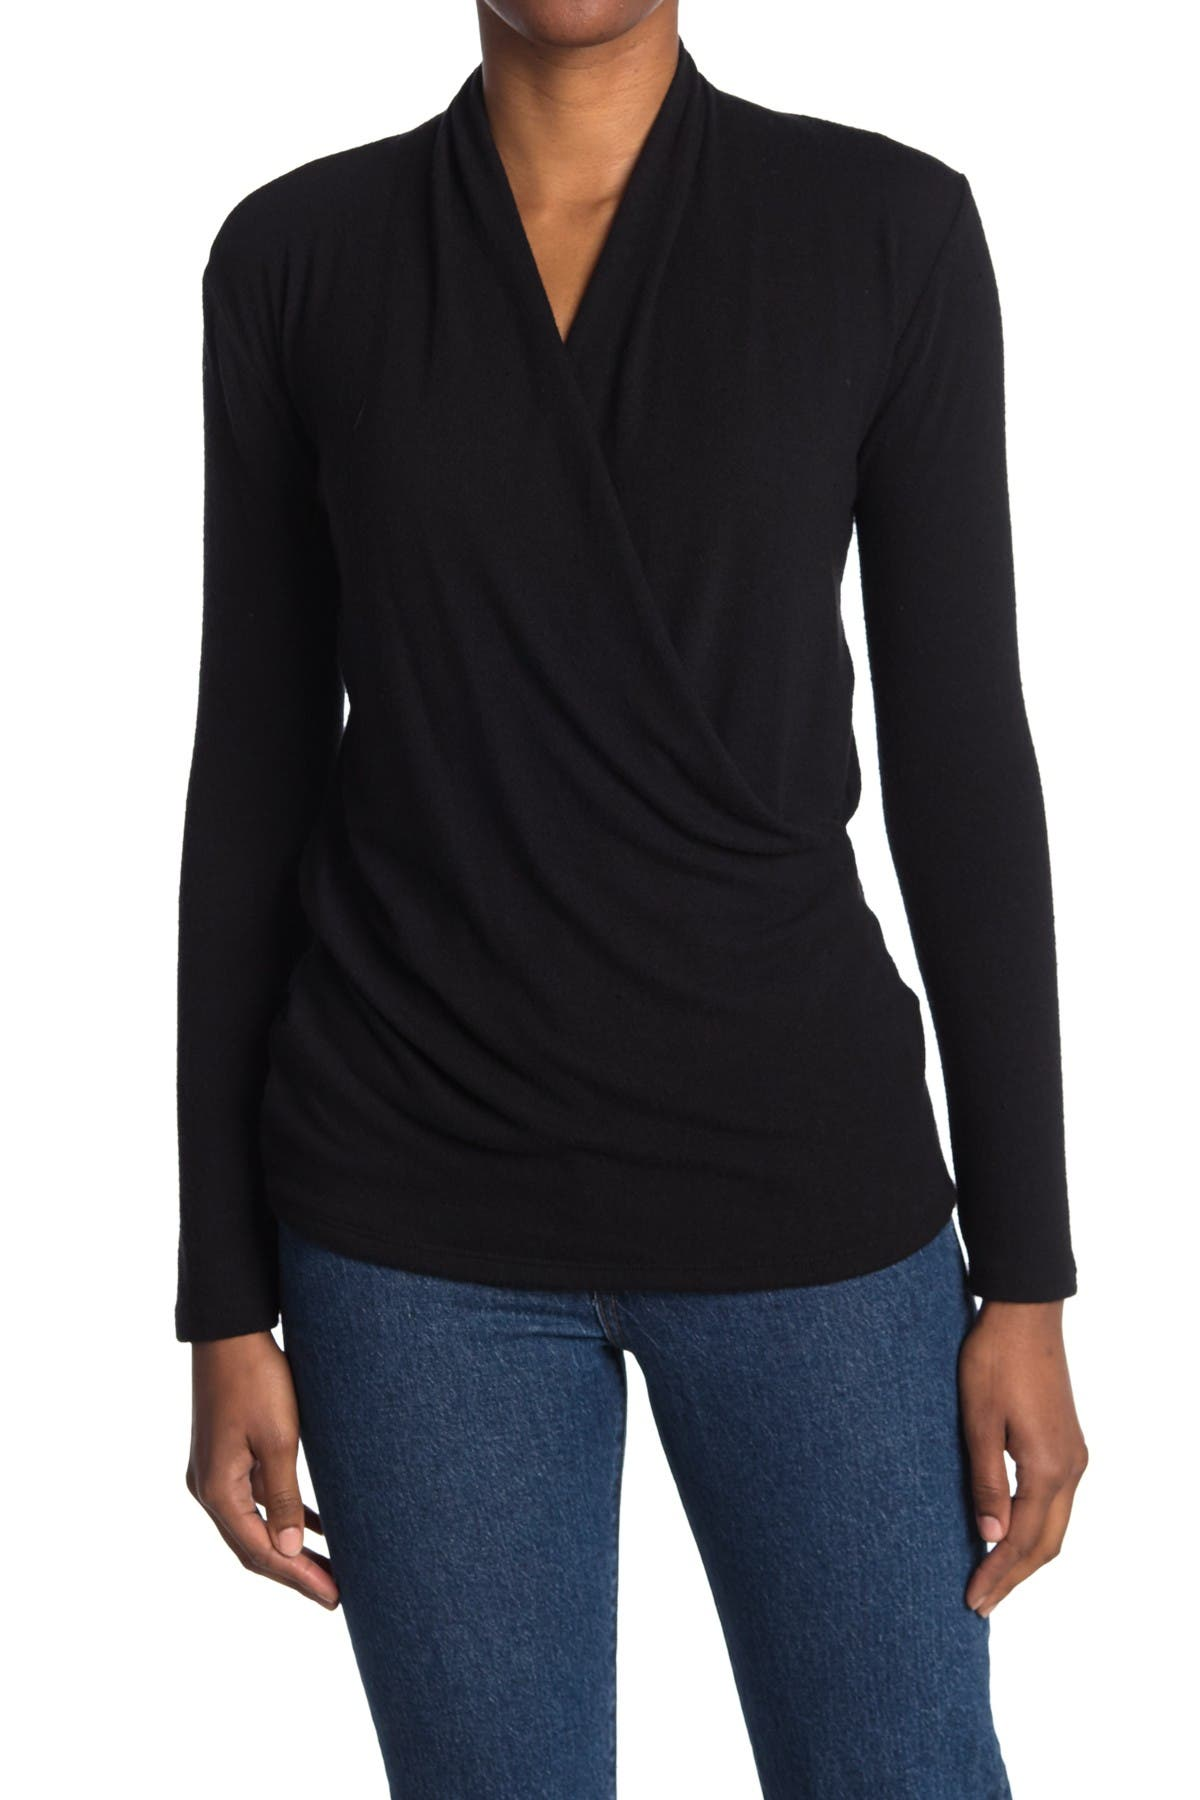 Image of Go Couture Surplice Wrap Style Sweater